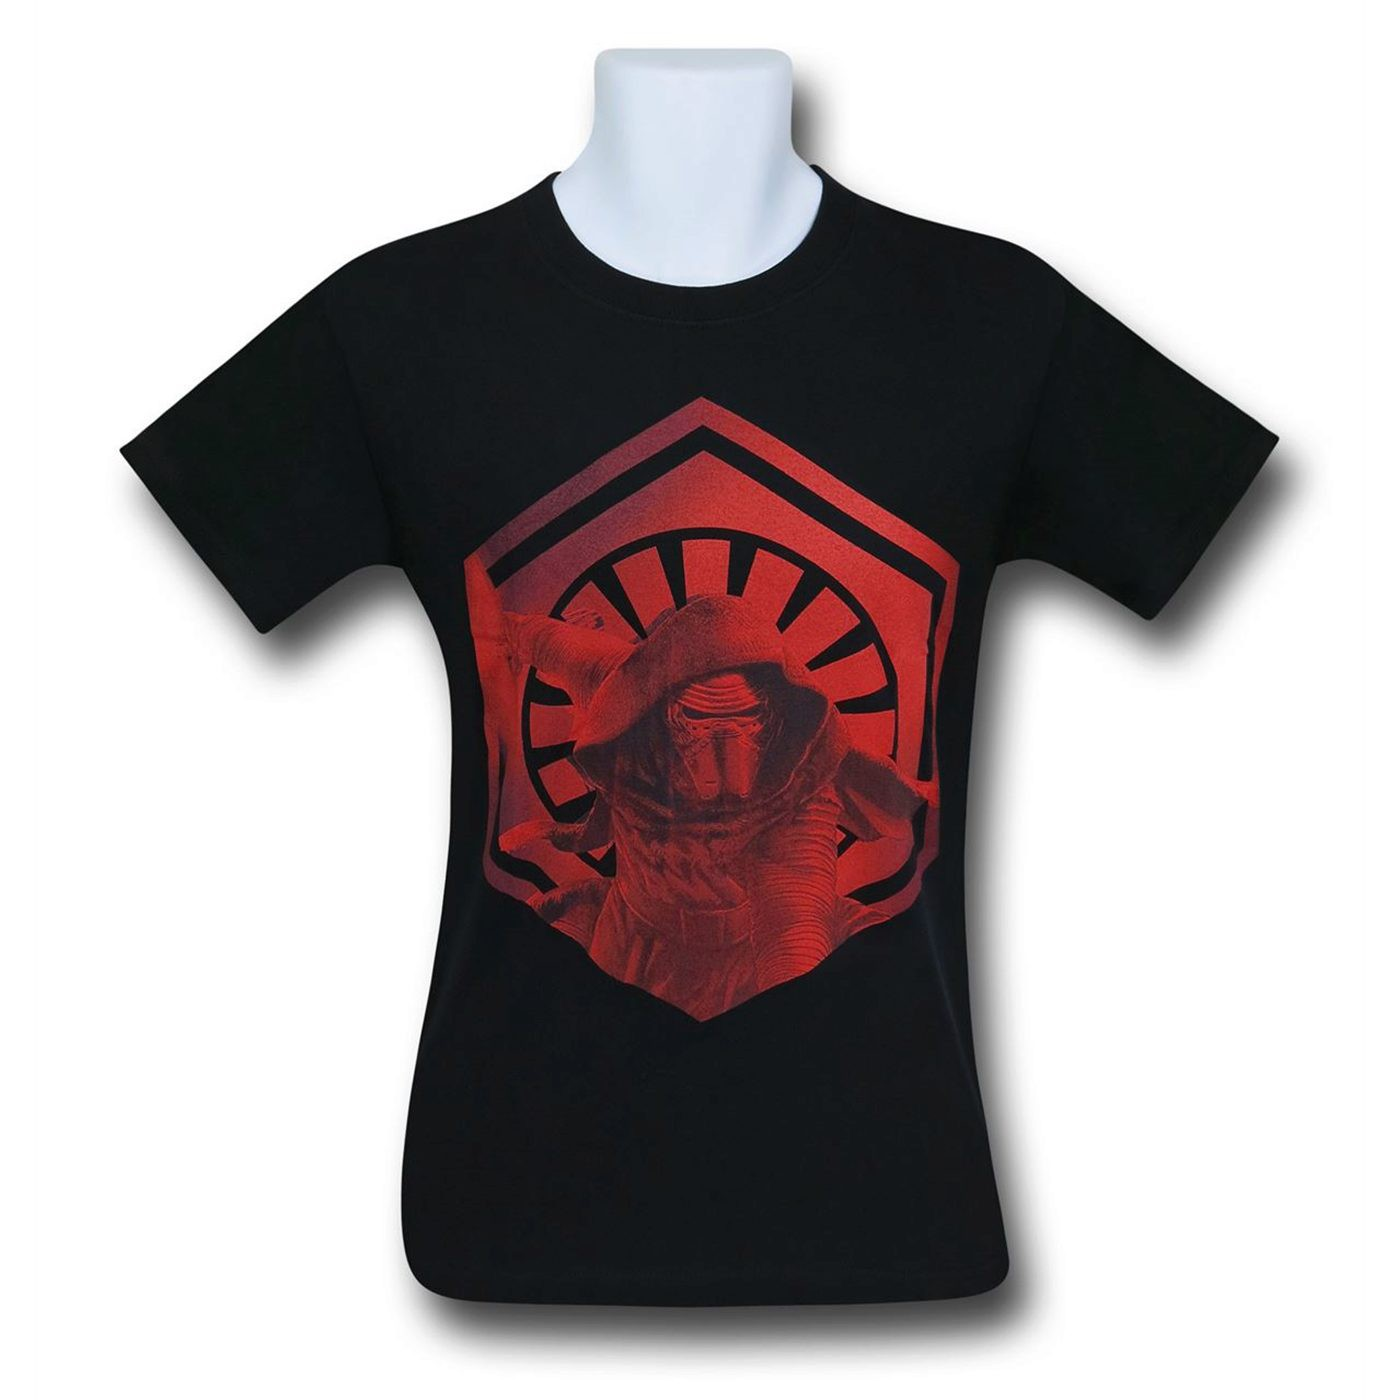 Star Wars Force Awakens Kylo Renpire T-Shirt